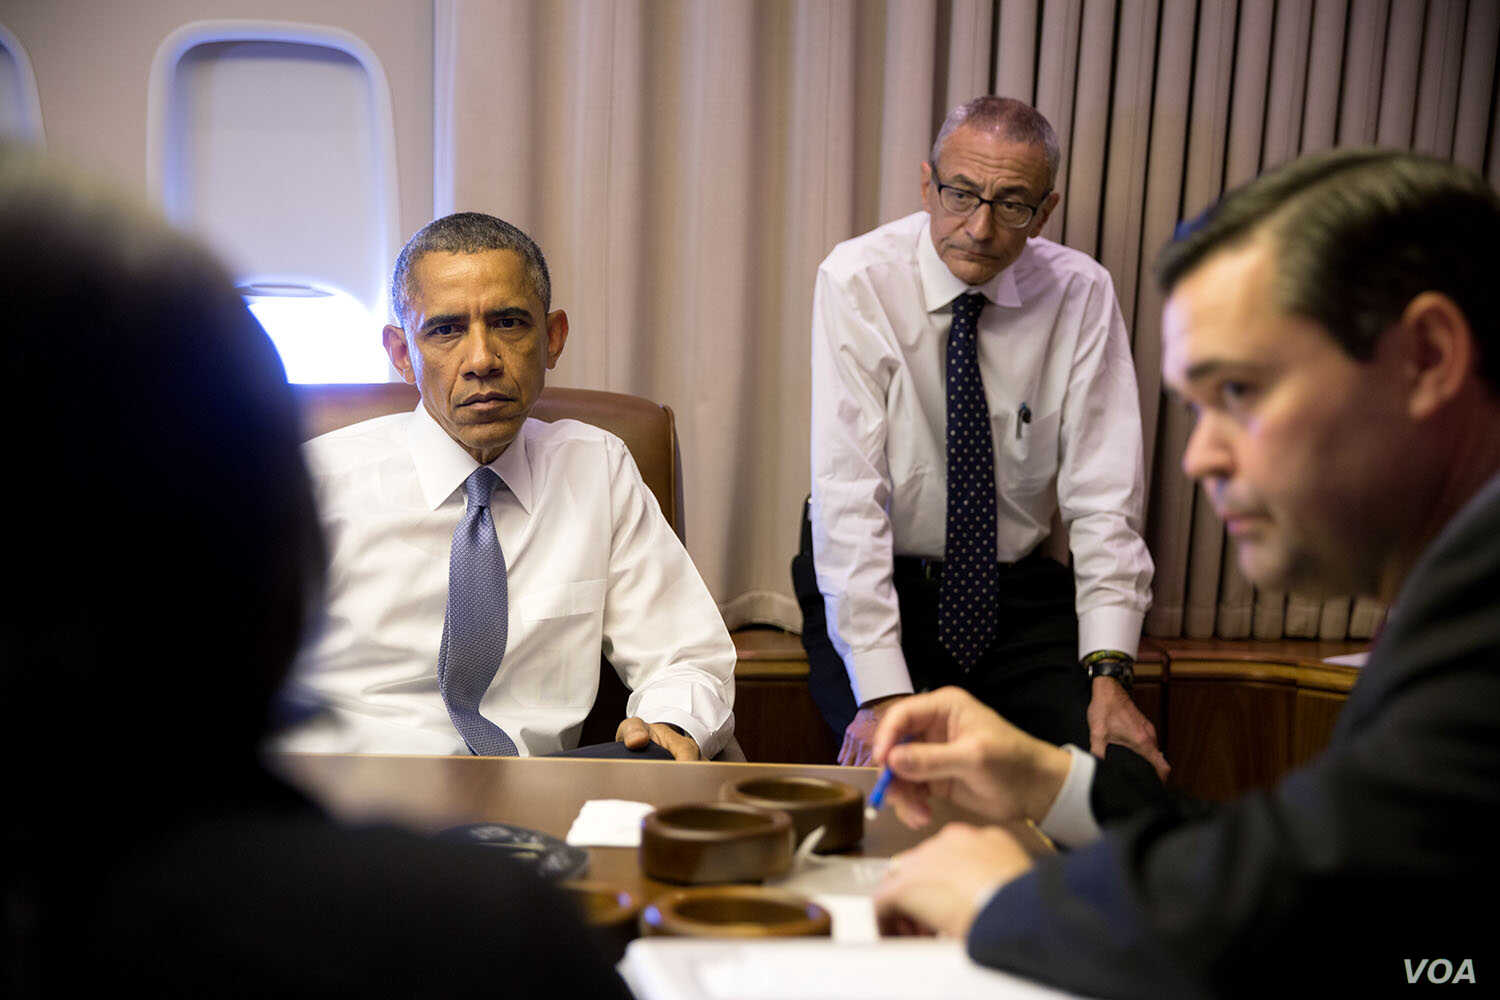 President Barack Obama holds a meeting with National Security Advisor Susan E. Rice, John Podesta, Counselor to the President and Phil Reiner, Senior Director for South Asian Affairs, aboard Air Force One en route to New Delhi, India, Jan. 25, 2015. ...